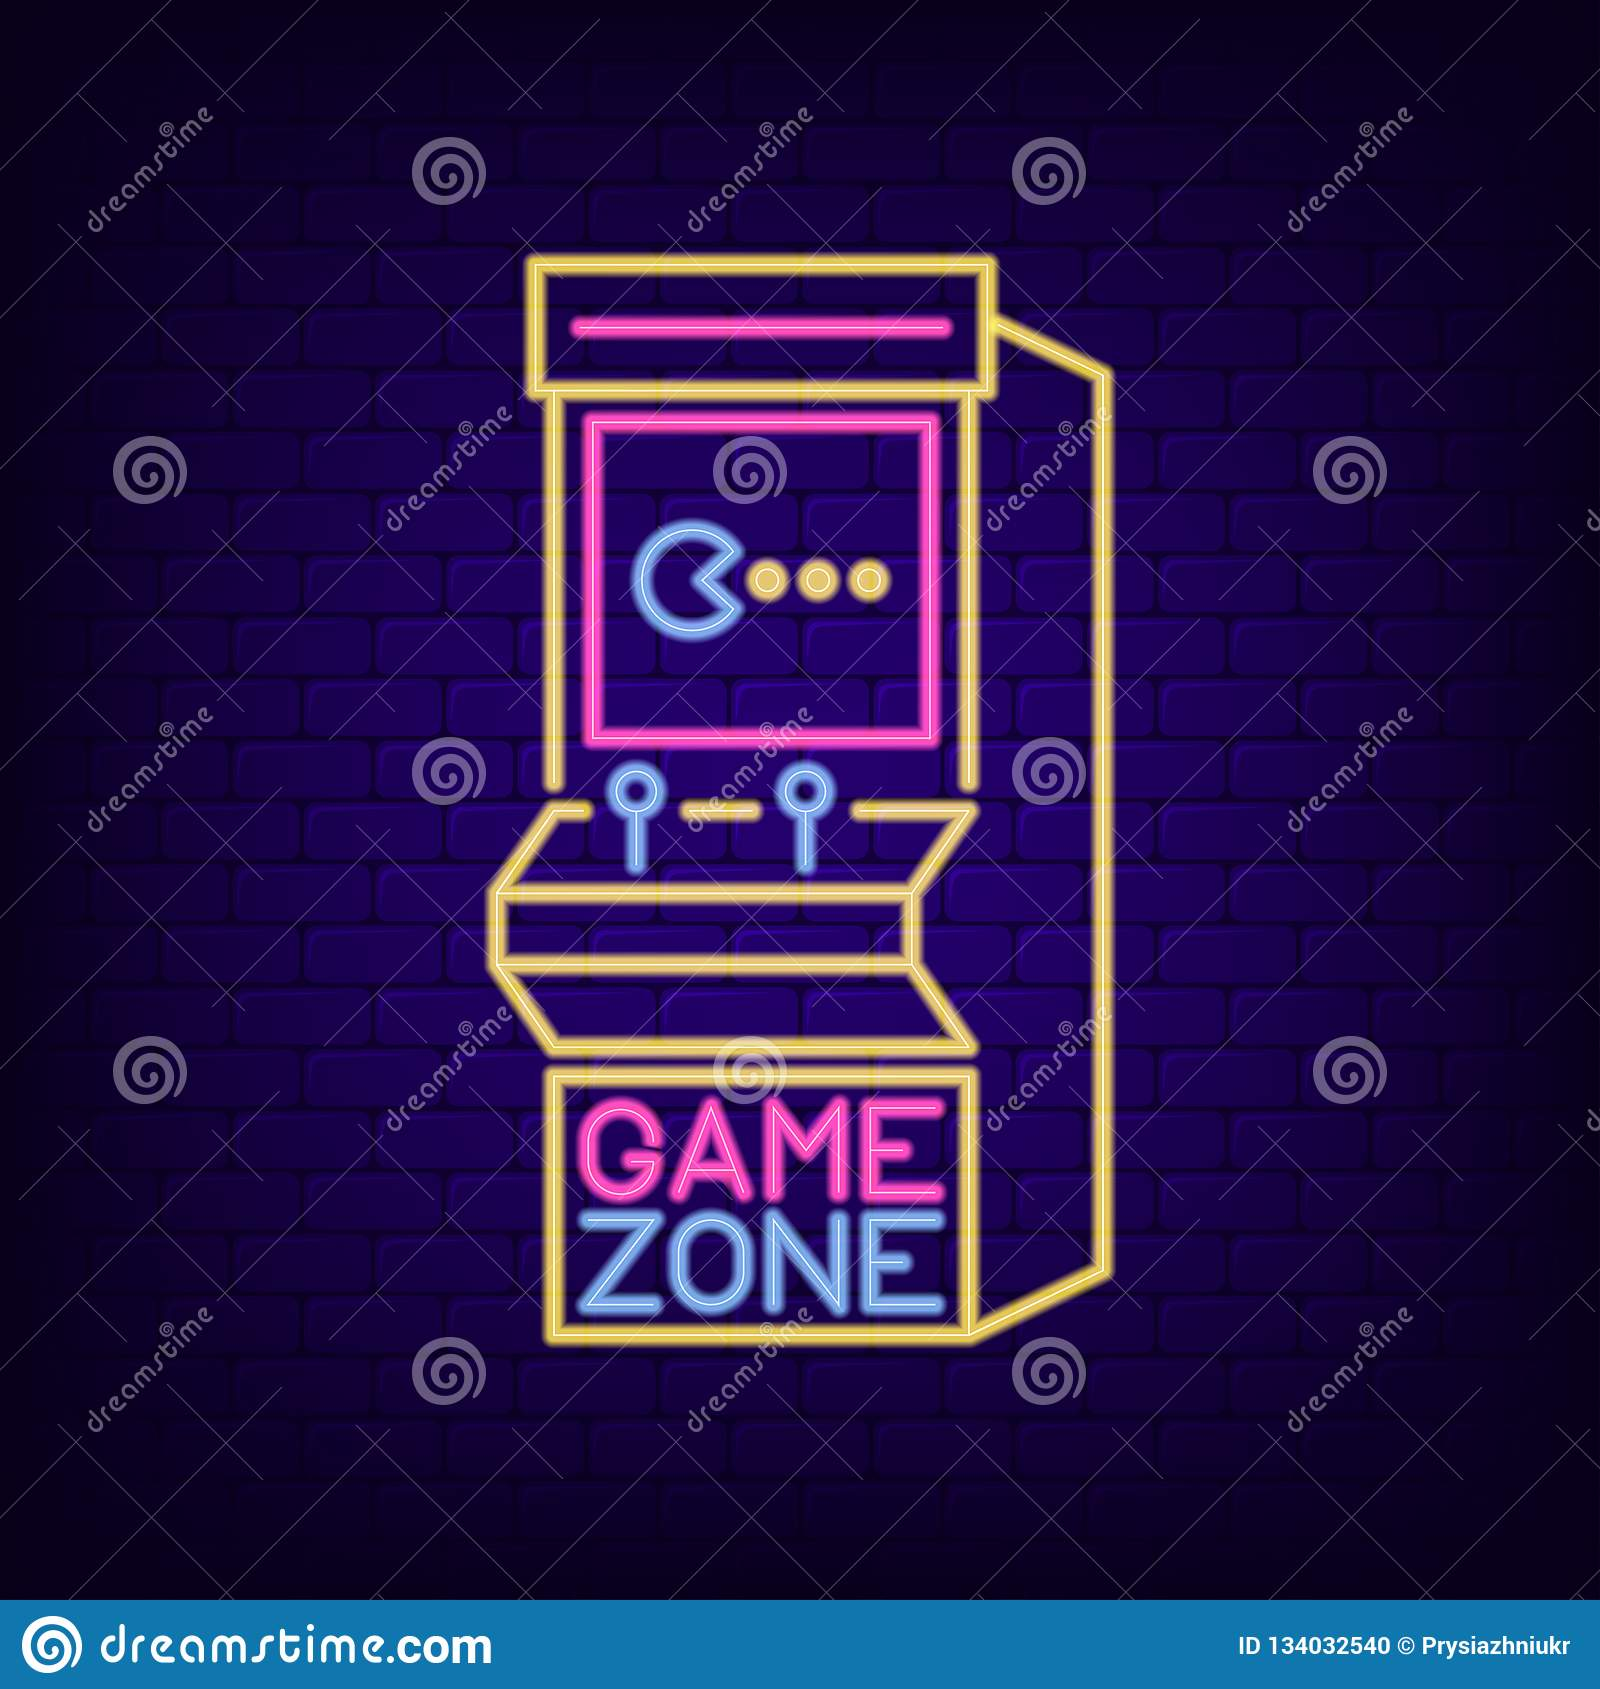 Arcade game machine neon sign. Game Zone night light signboard with retro slot machine. Gaming advertising neon banner. Vector.